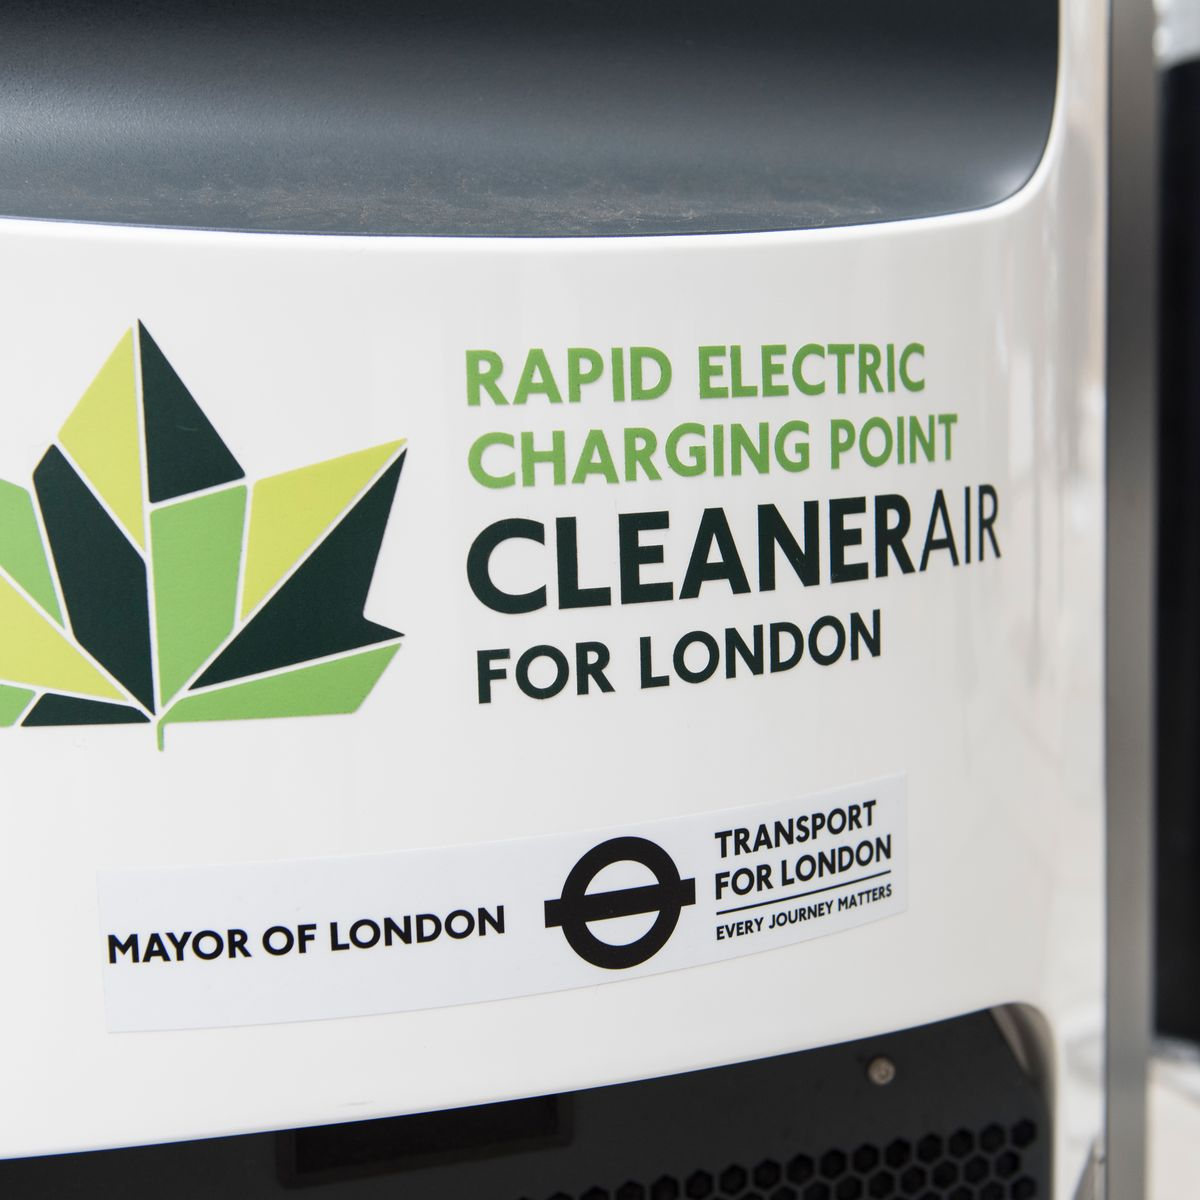 🔌⚡️ Another milestone reached in our work to tackle #AirPollution. The Mayor and @TfL have now delivered 300 #ElectricVehicle rapid charging points across London - ahead of target. London now has almost 6,000 charging points for #EVs.